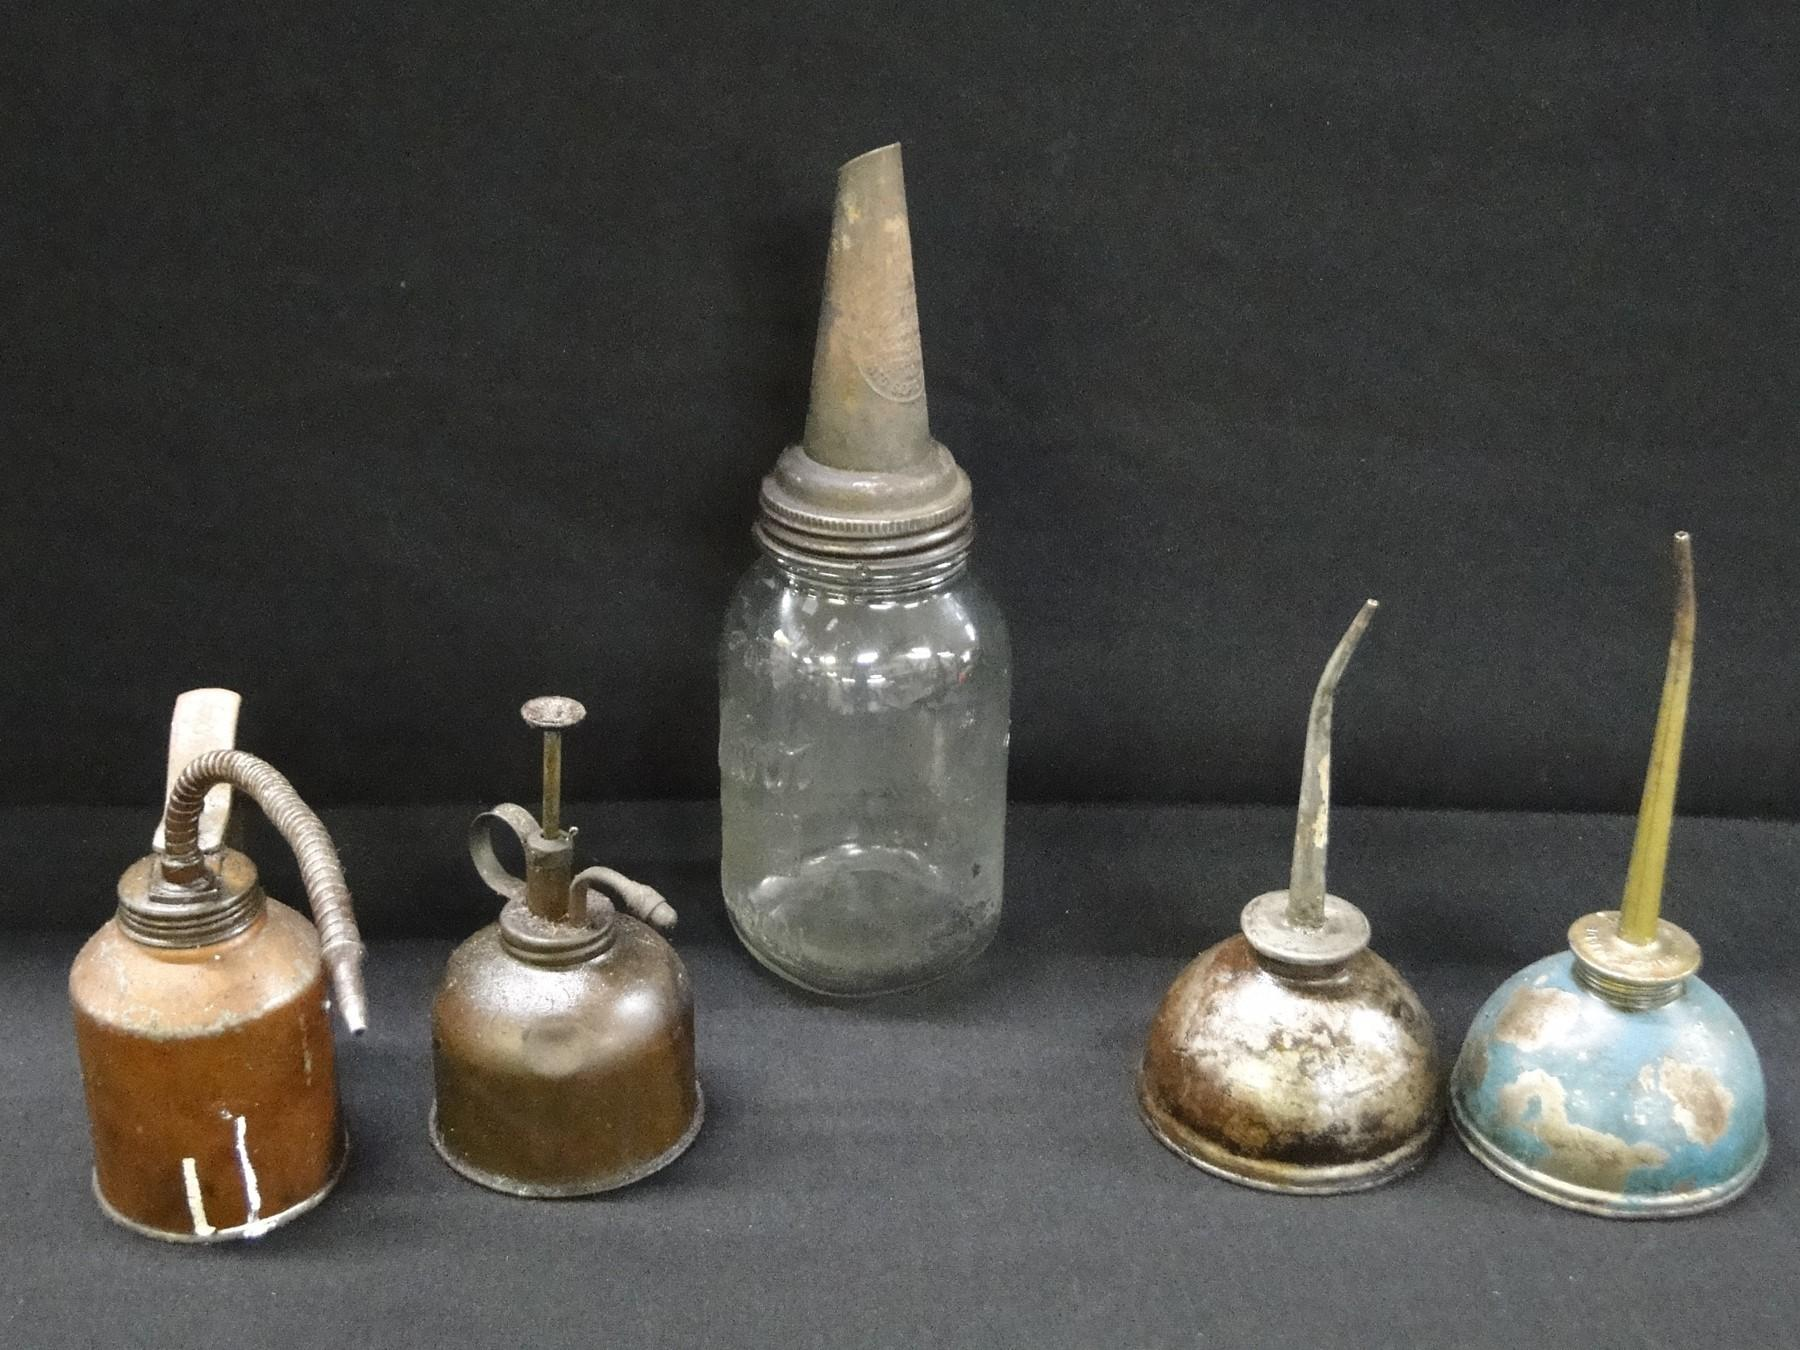 Lot of Vintage Oil Spout and Small Oil Cans